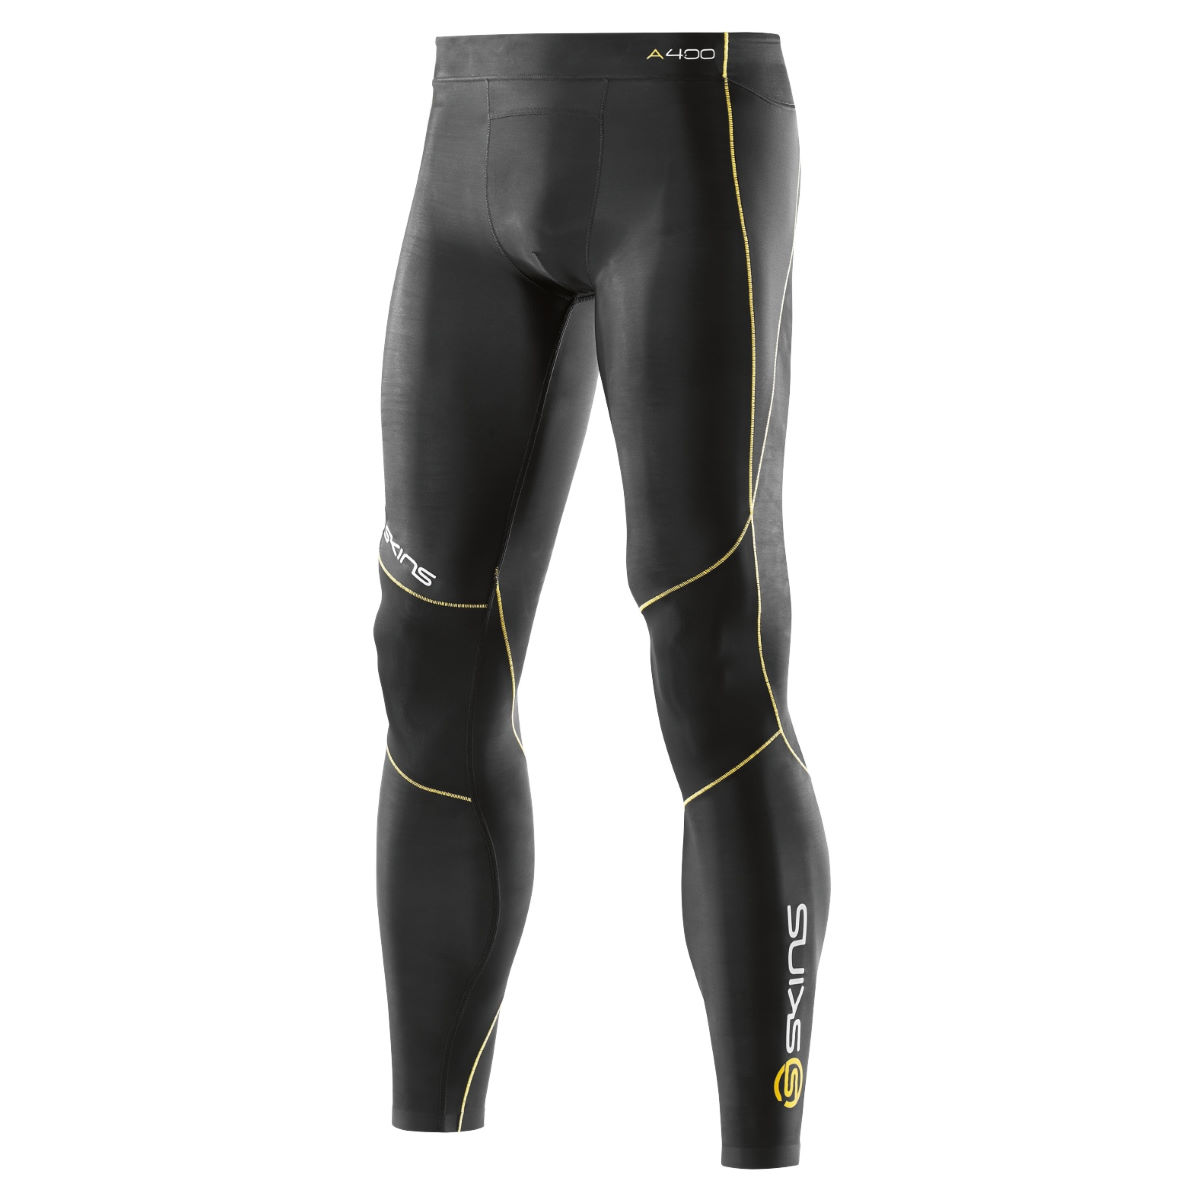 Collant long SKINS A400 - XS Noir/Jaune Sous-vêtements compression